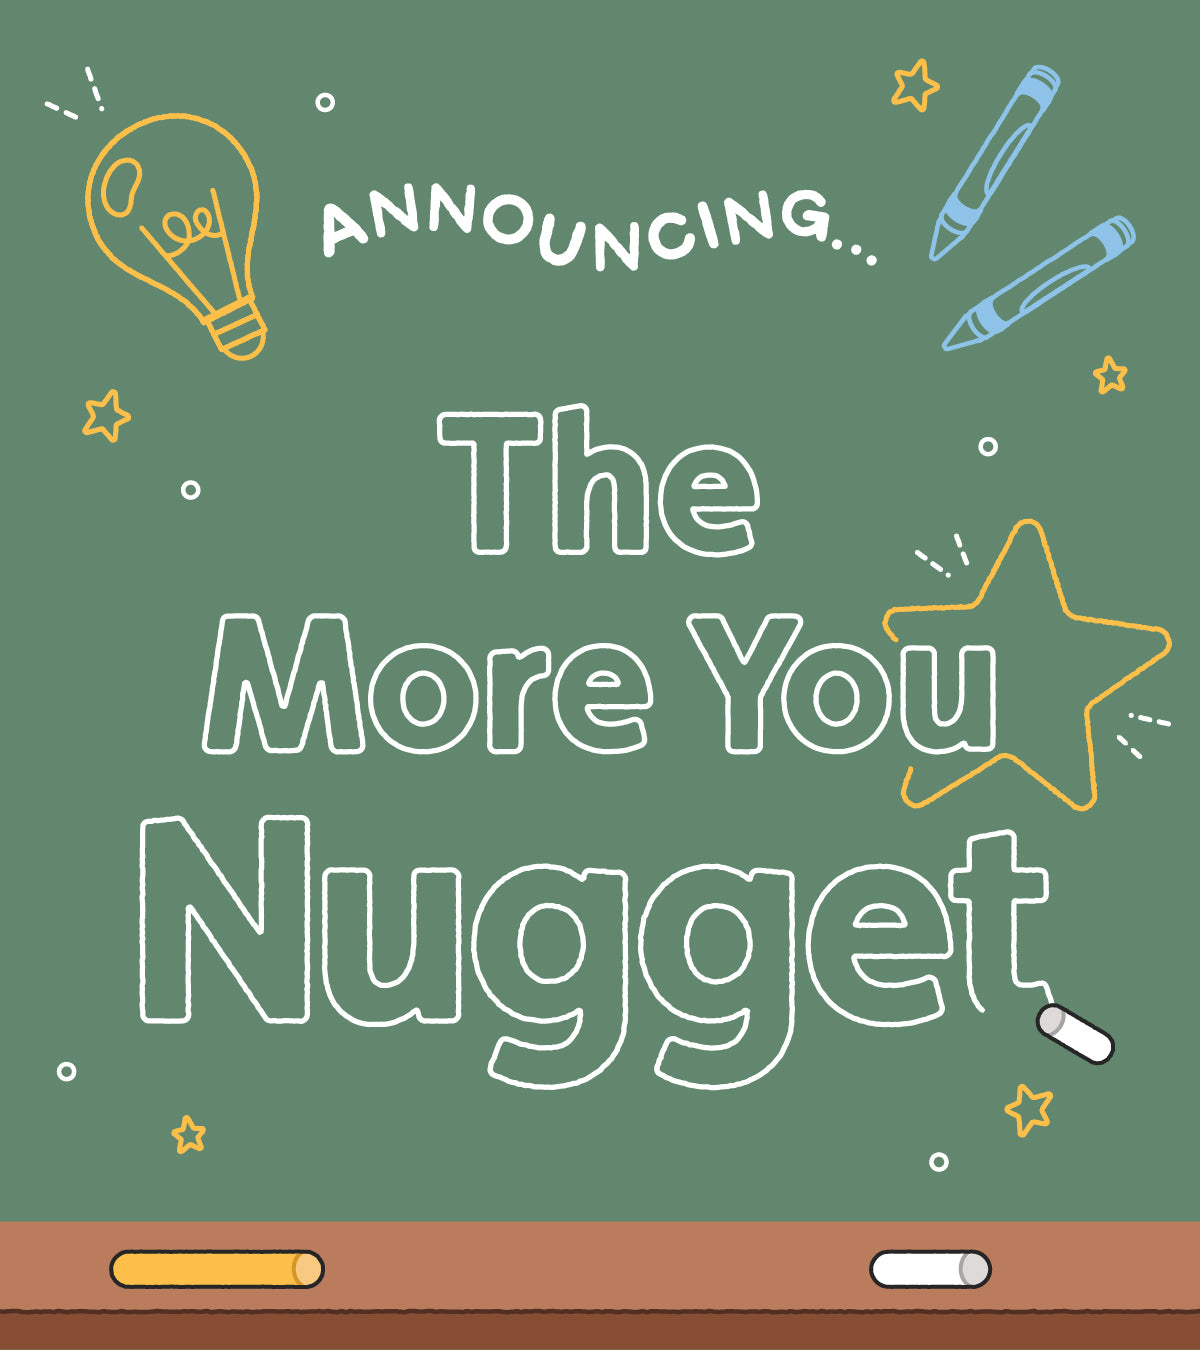 """""""Announcing... The More You Nugget"""" illustration on a chalkboard with doodles"""